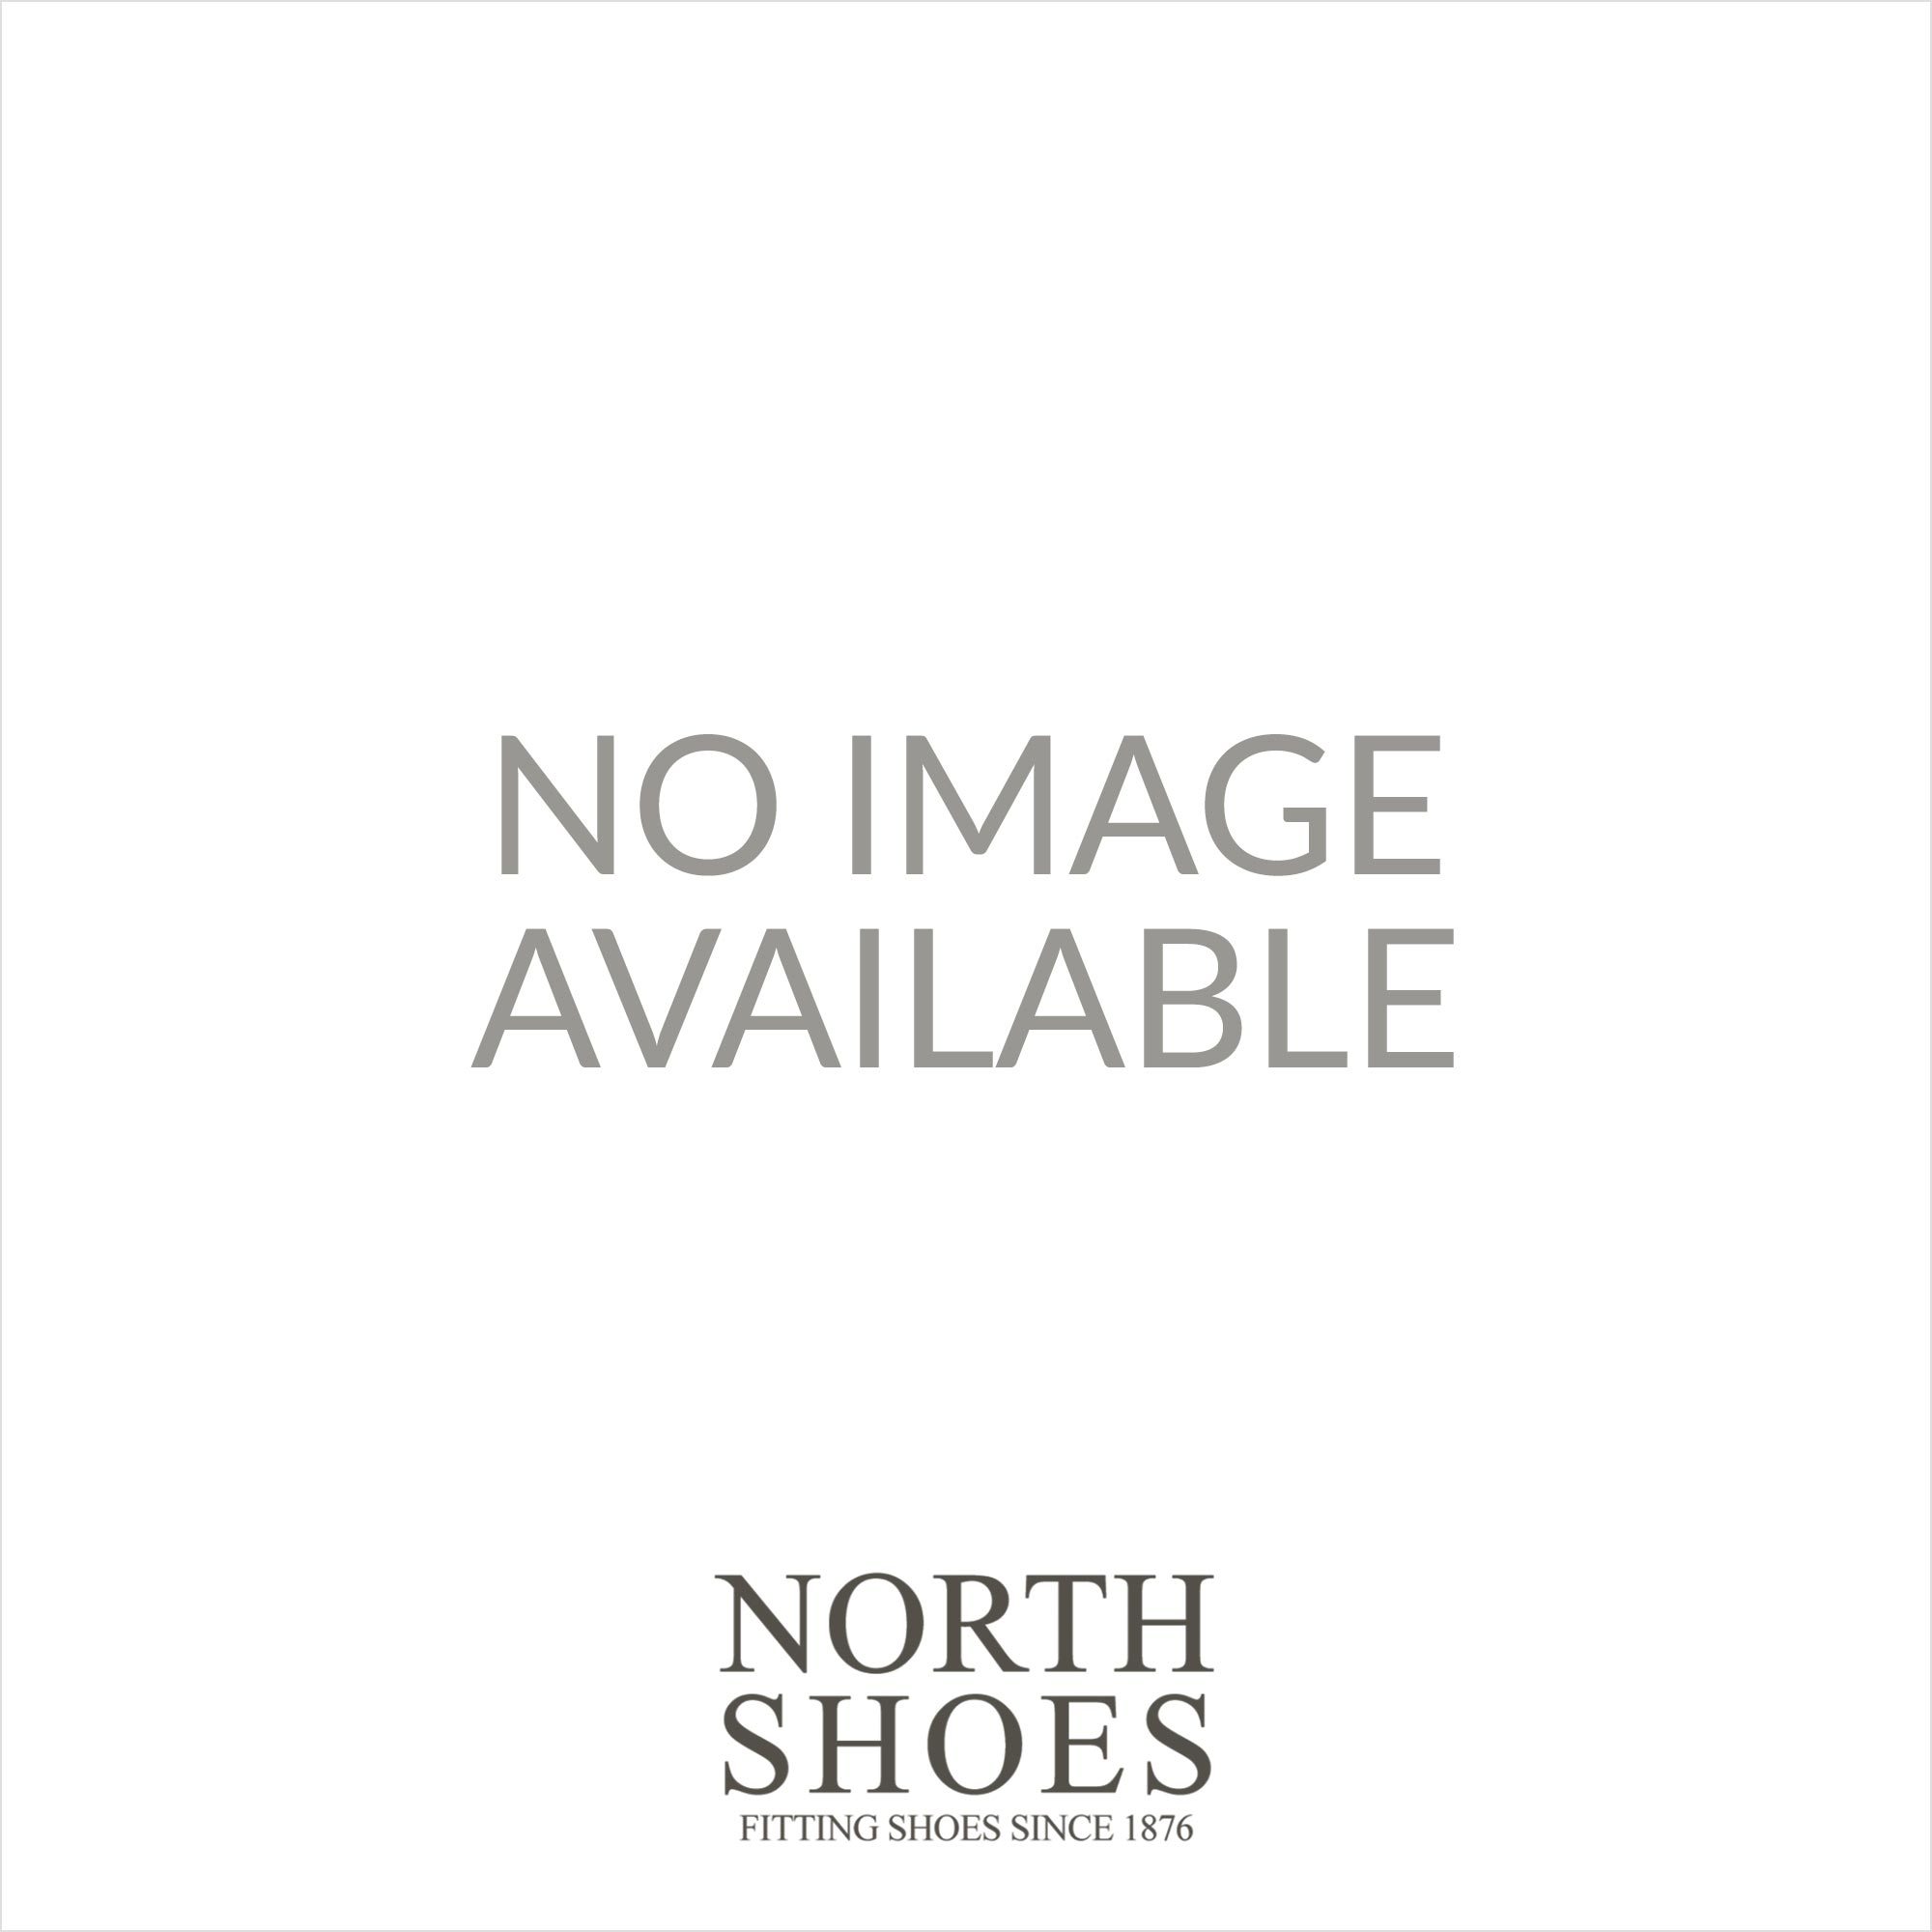 3b403e45fdf561 Clarks Warm Glamour Grey Suede Womens Slip On Moccasin Slipper - Clarks  from North Shoes UK